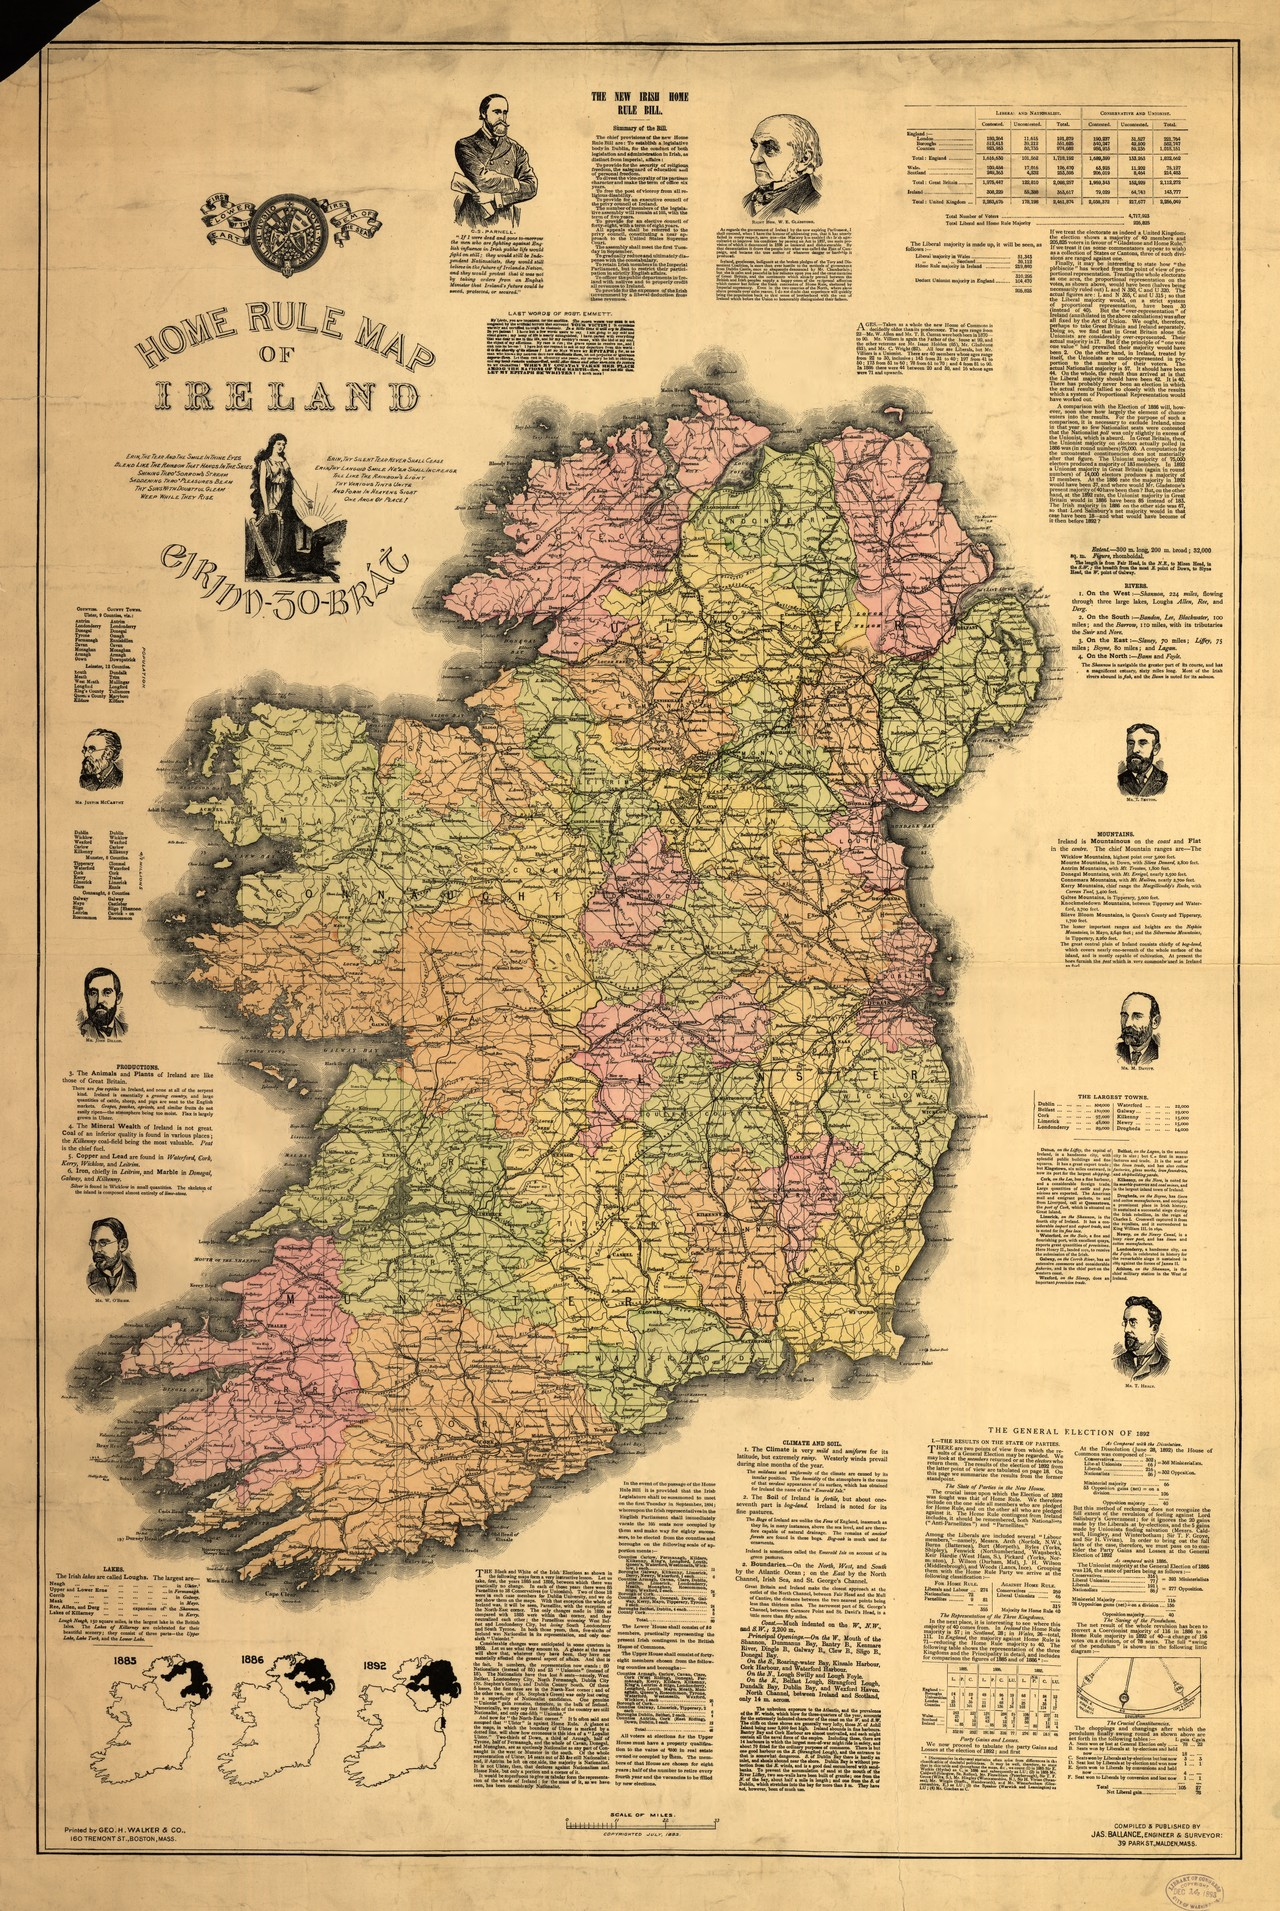 Full Map Of Ireland.Home Rule Map Of Ireland Ucd Digital Library